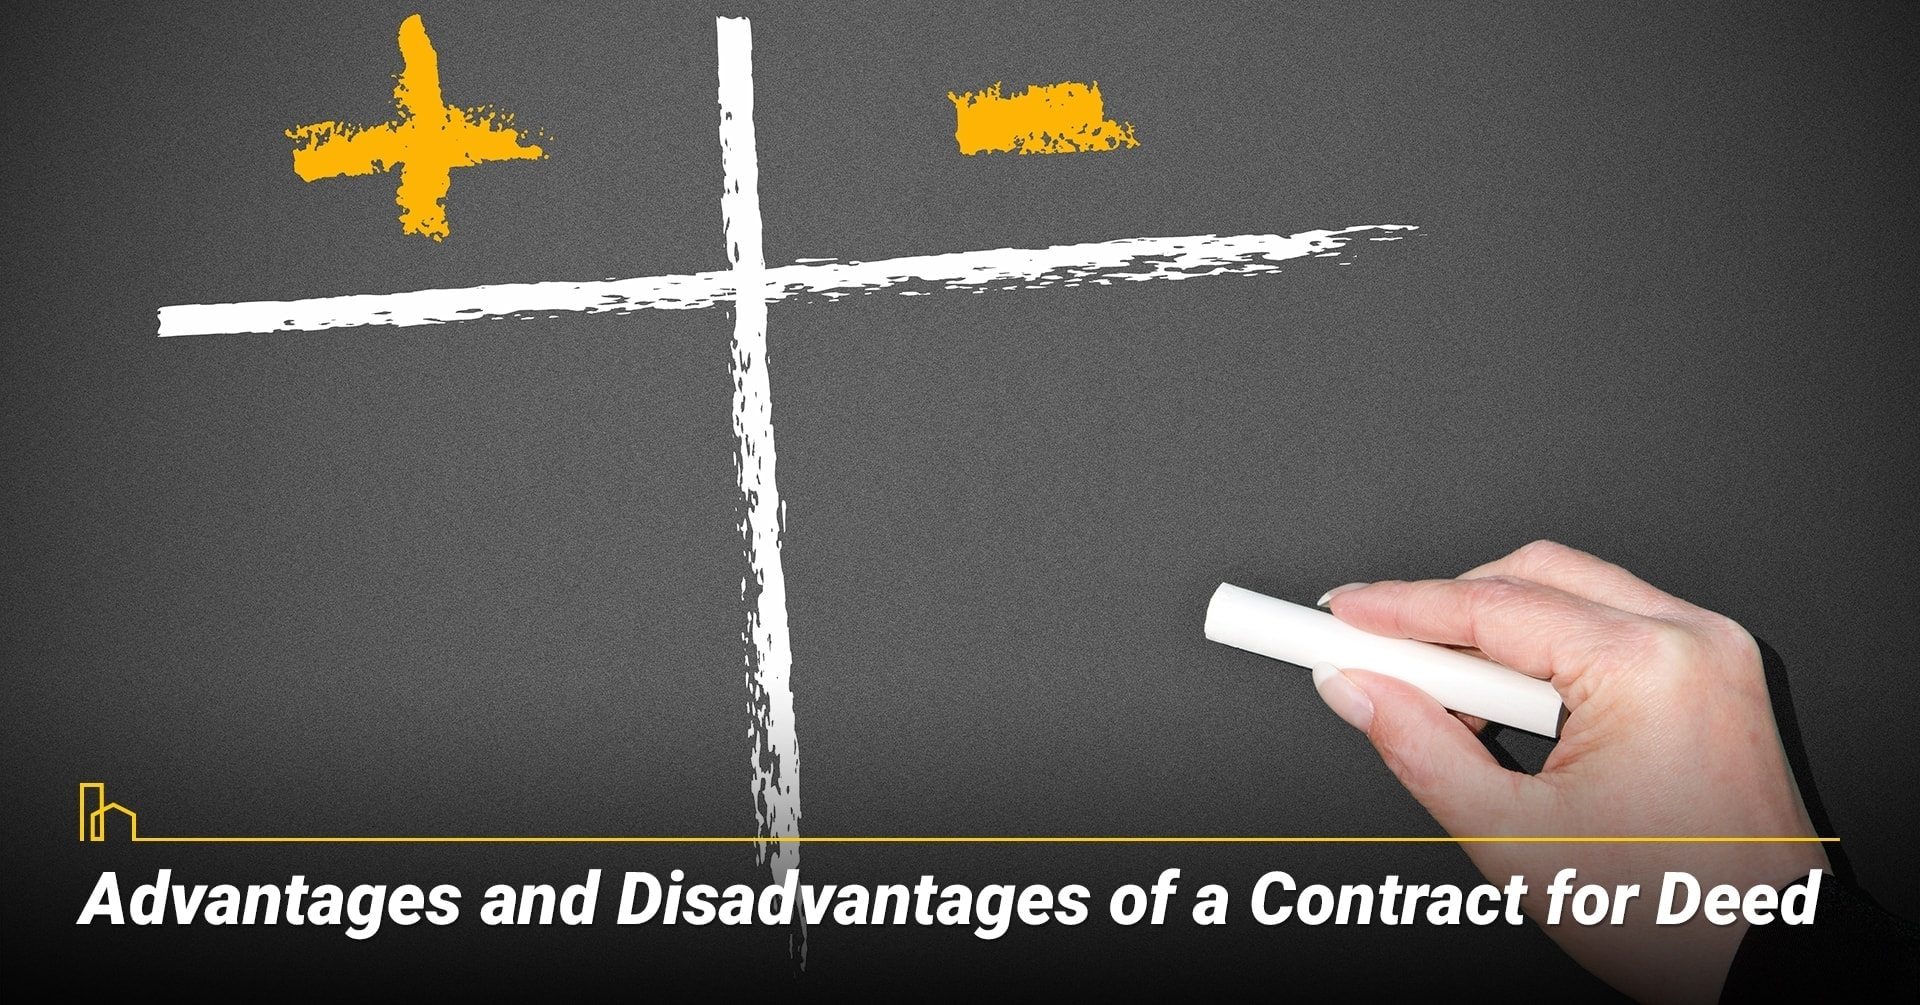 Advantages and Disadvantages of a Contract for Deed, know your Contract for Deed document